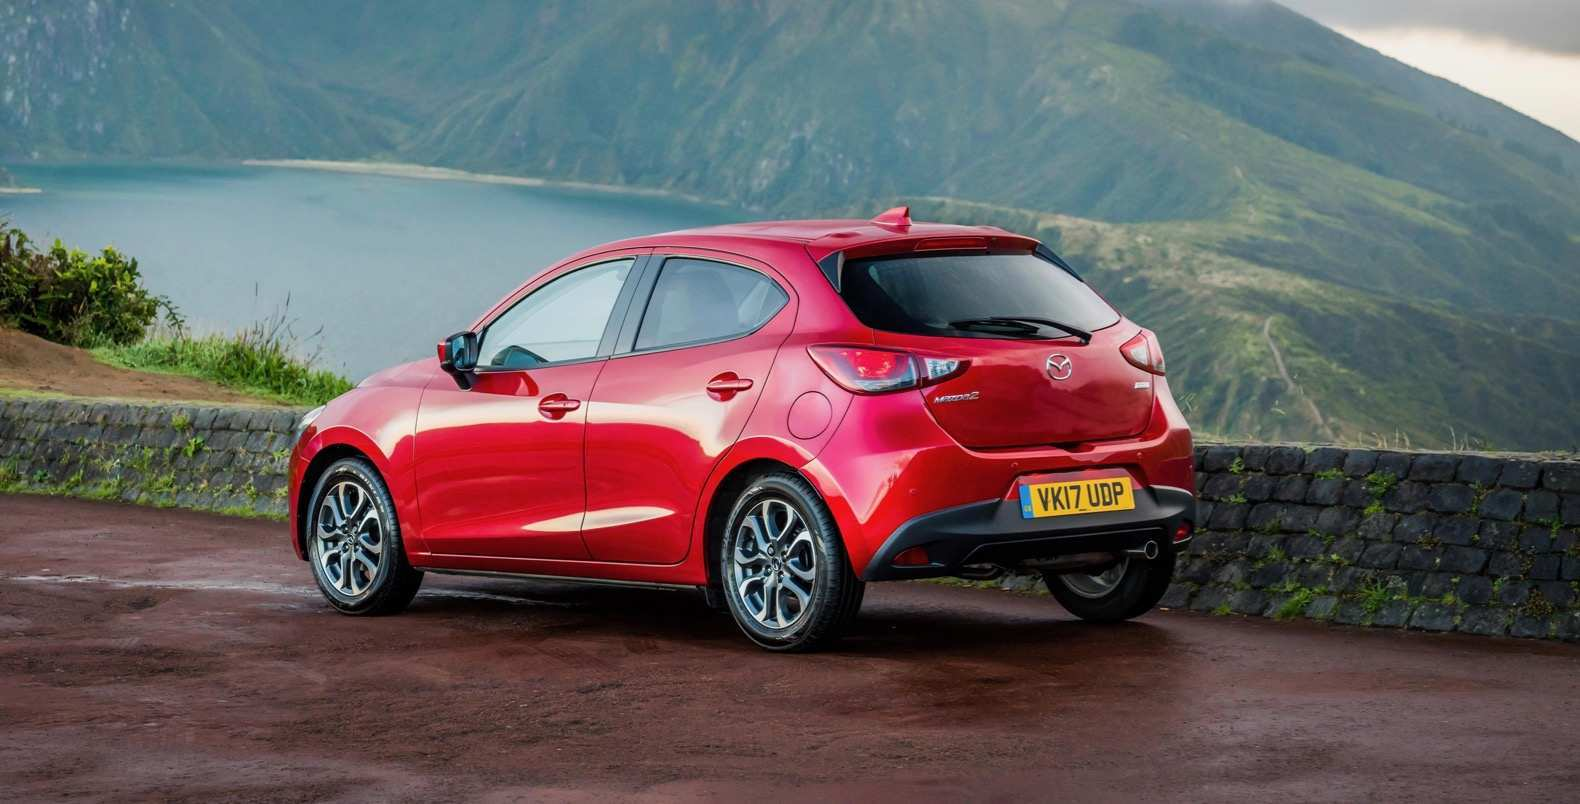 19 All New Mazda 2 Hatchback 2020 Exterior and Interior